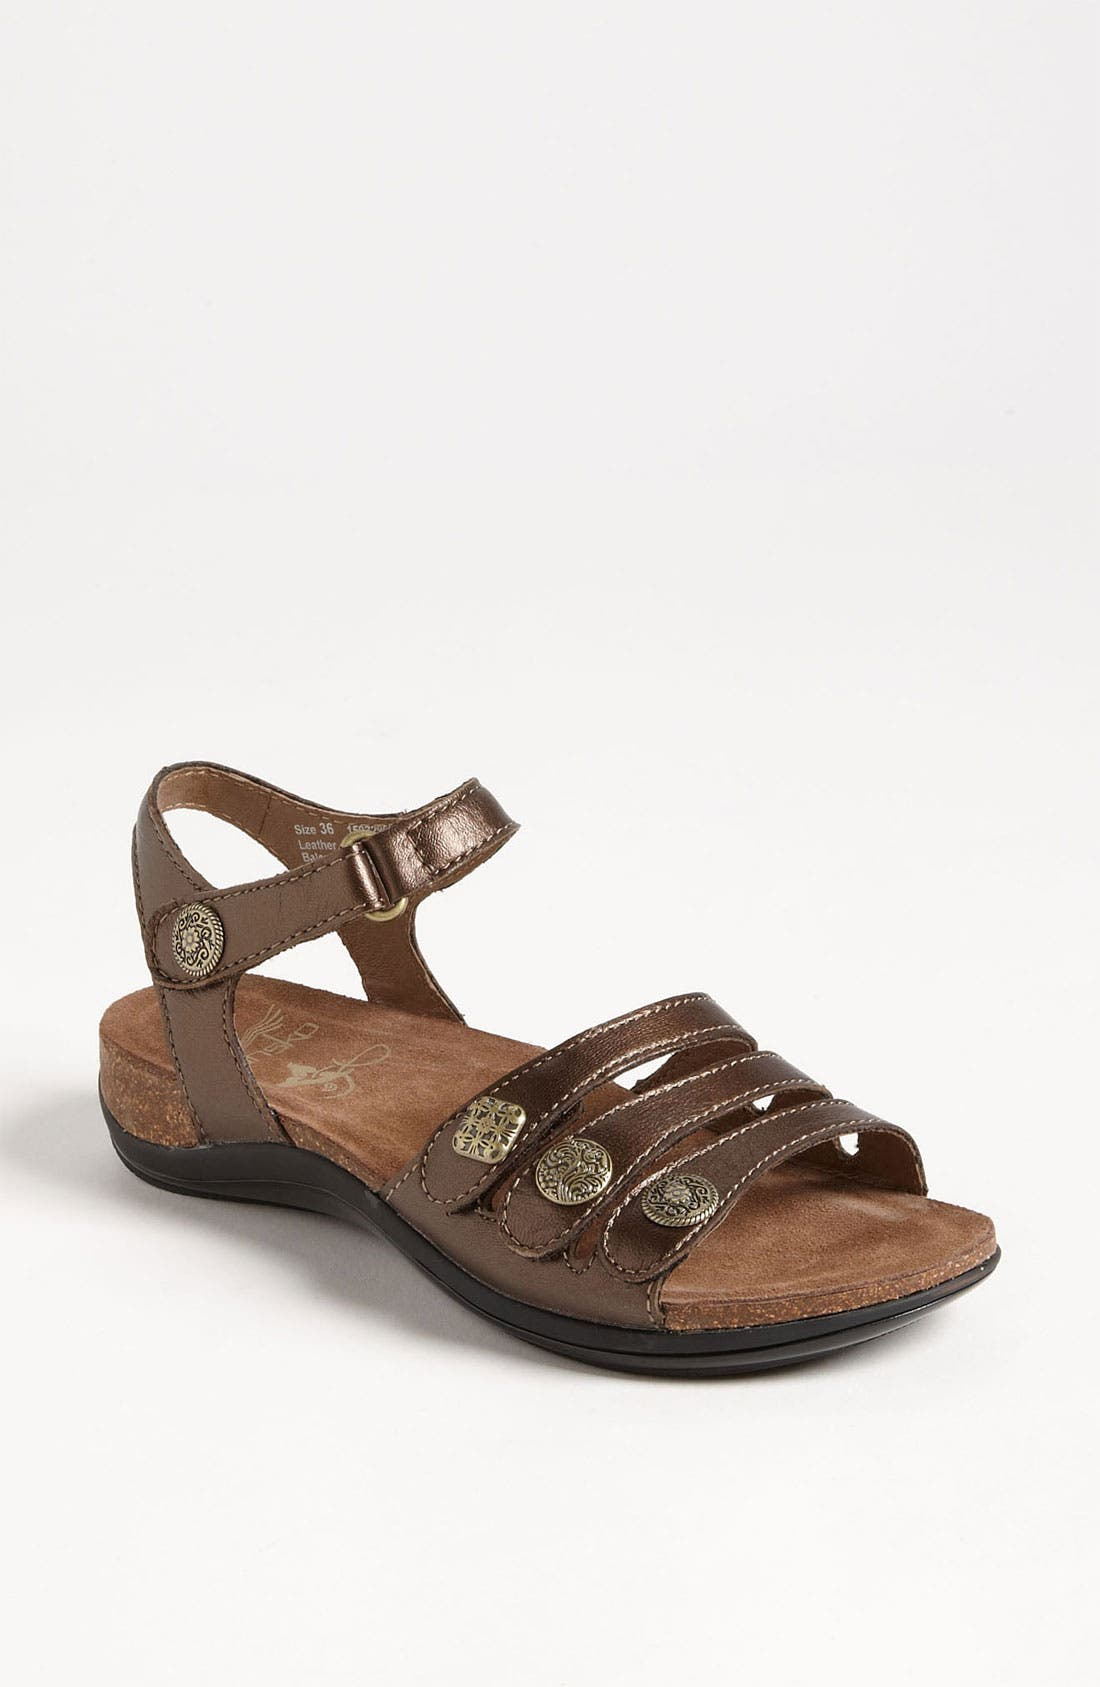 Alternate Image 1 Selected - Dansko 'Jess' Sandal